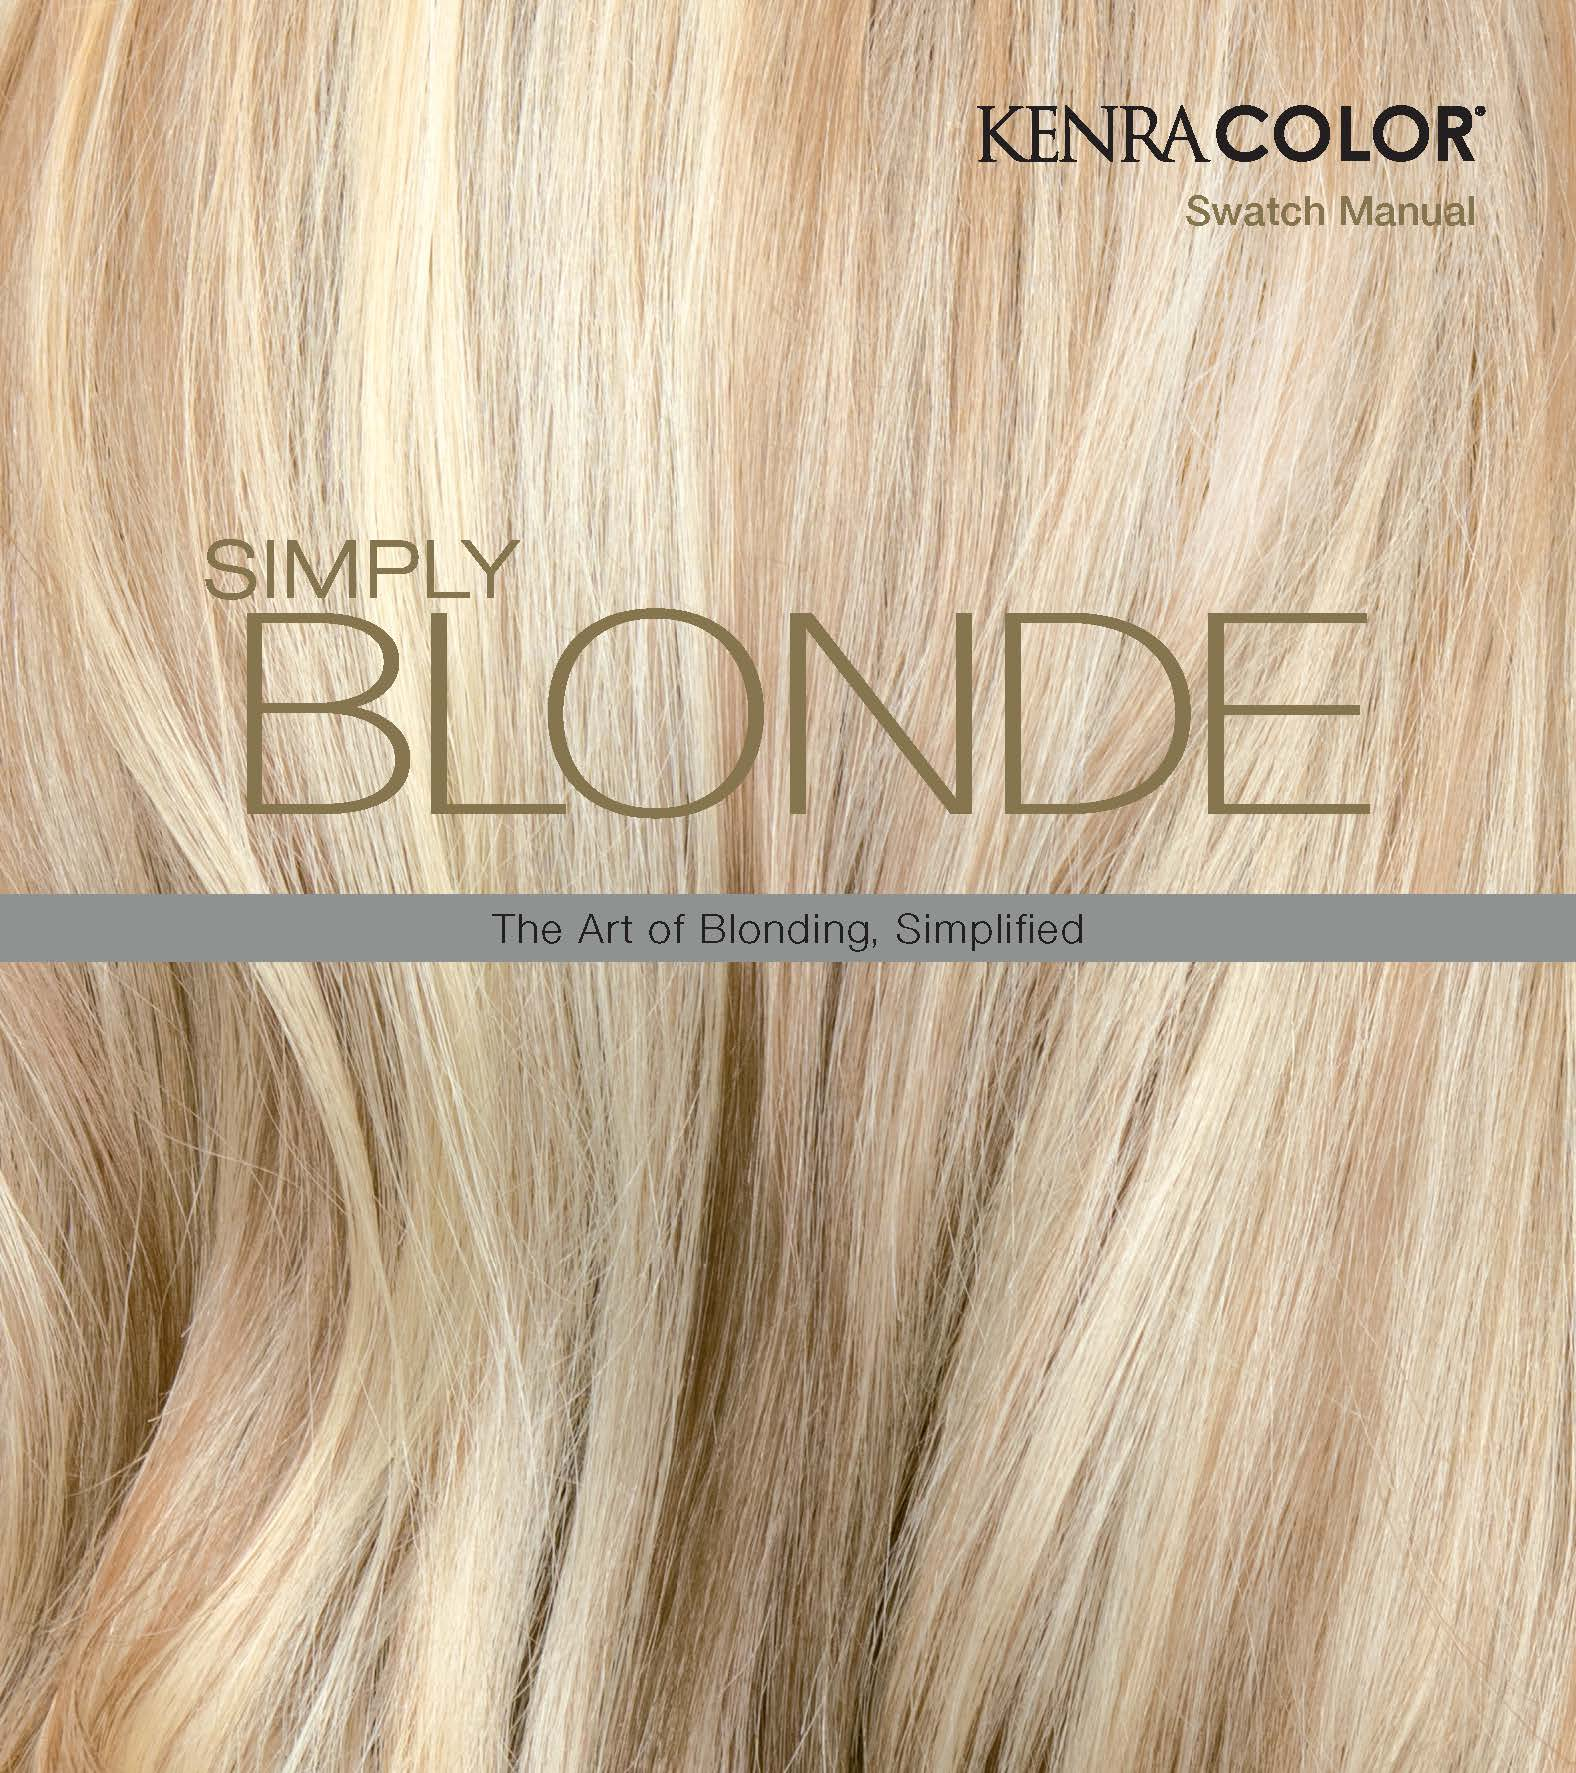 Download the Simply Blonde Manual Here.